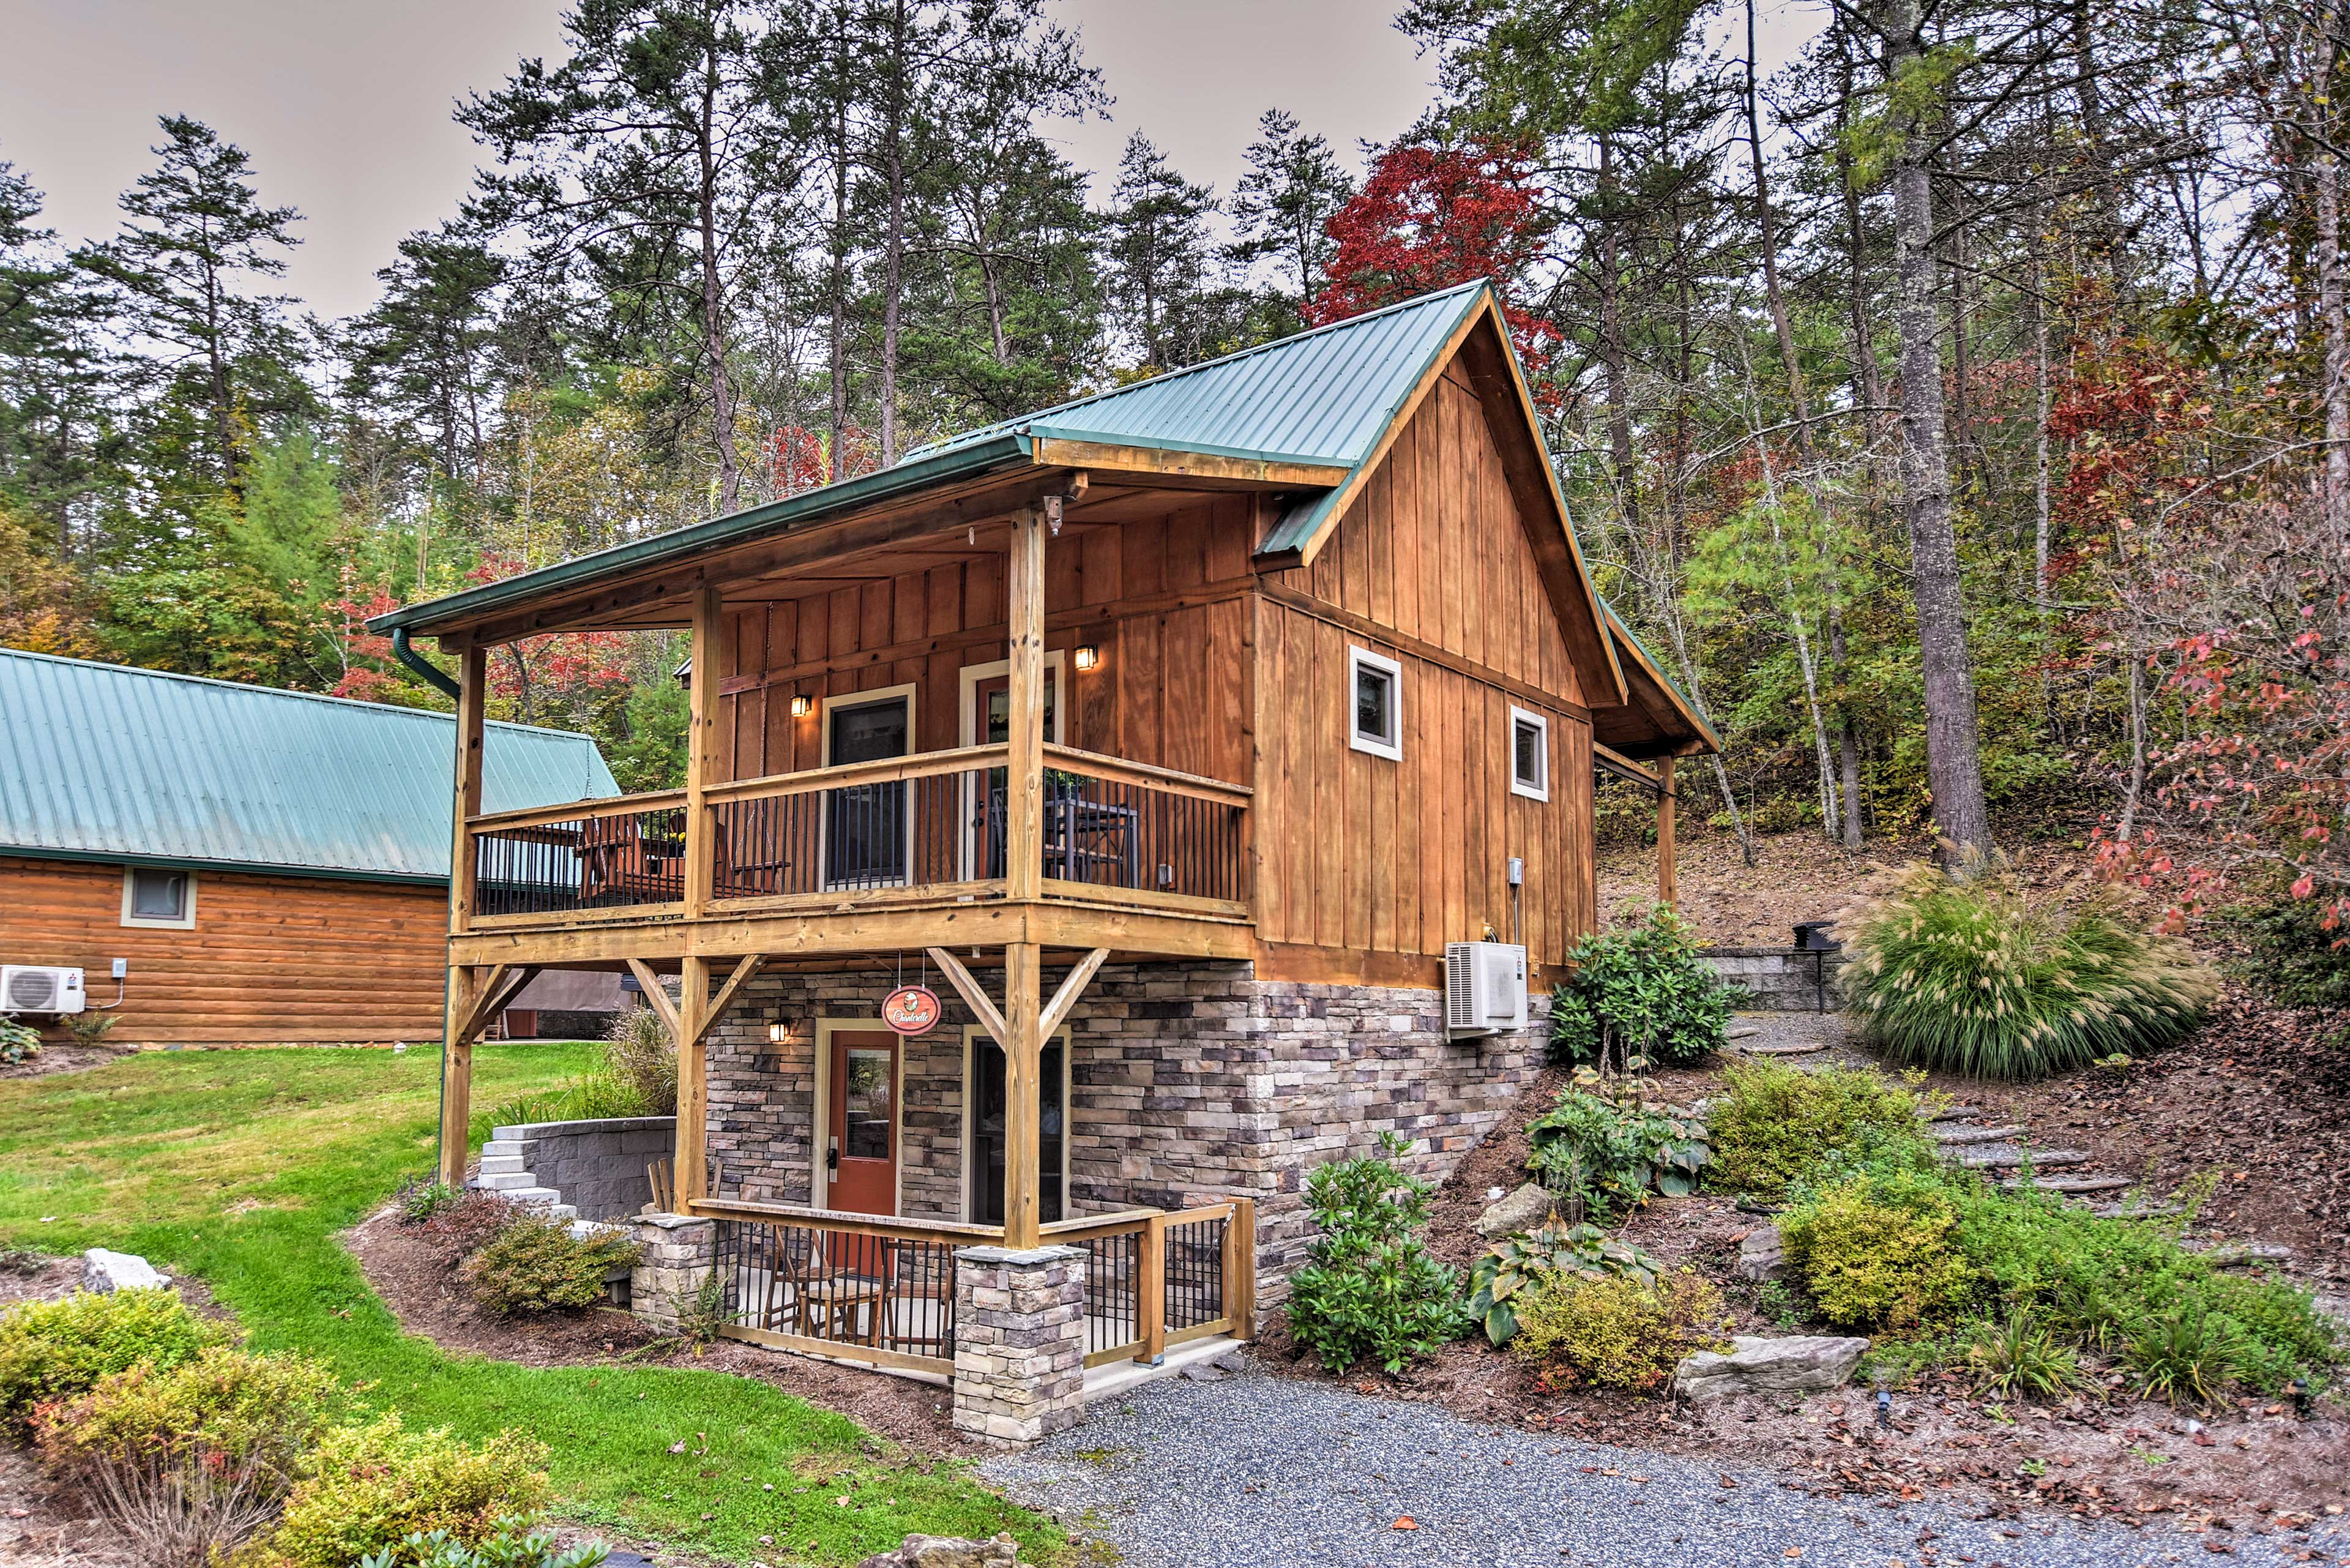 Weaverville Vacation Rental Cabin   2BR   1BA   800 Sq Ft   Steps Required